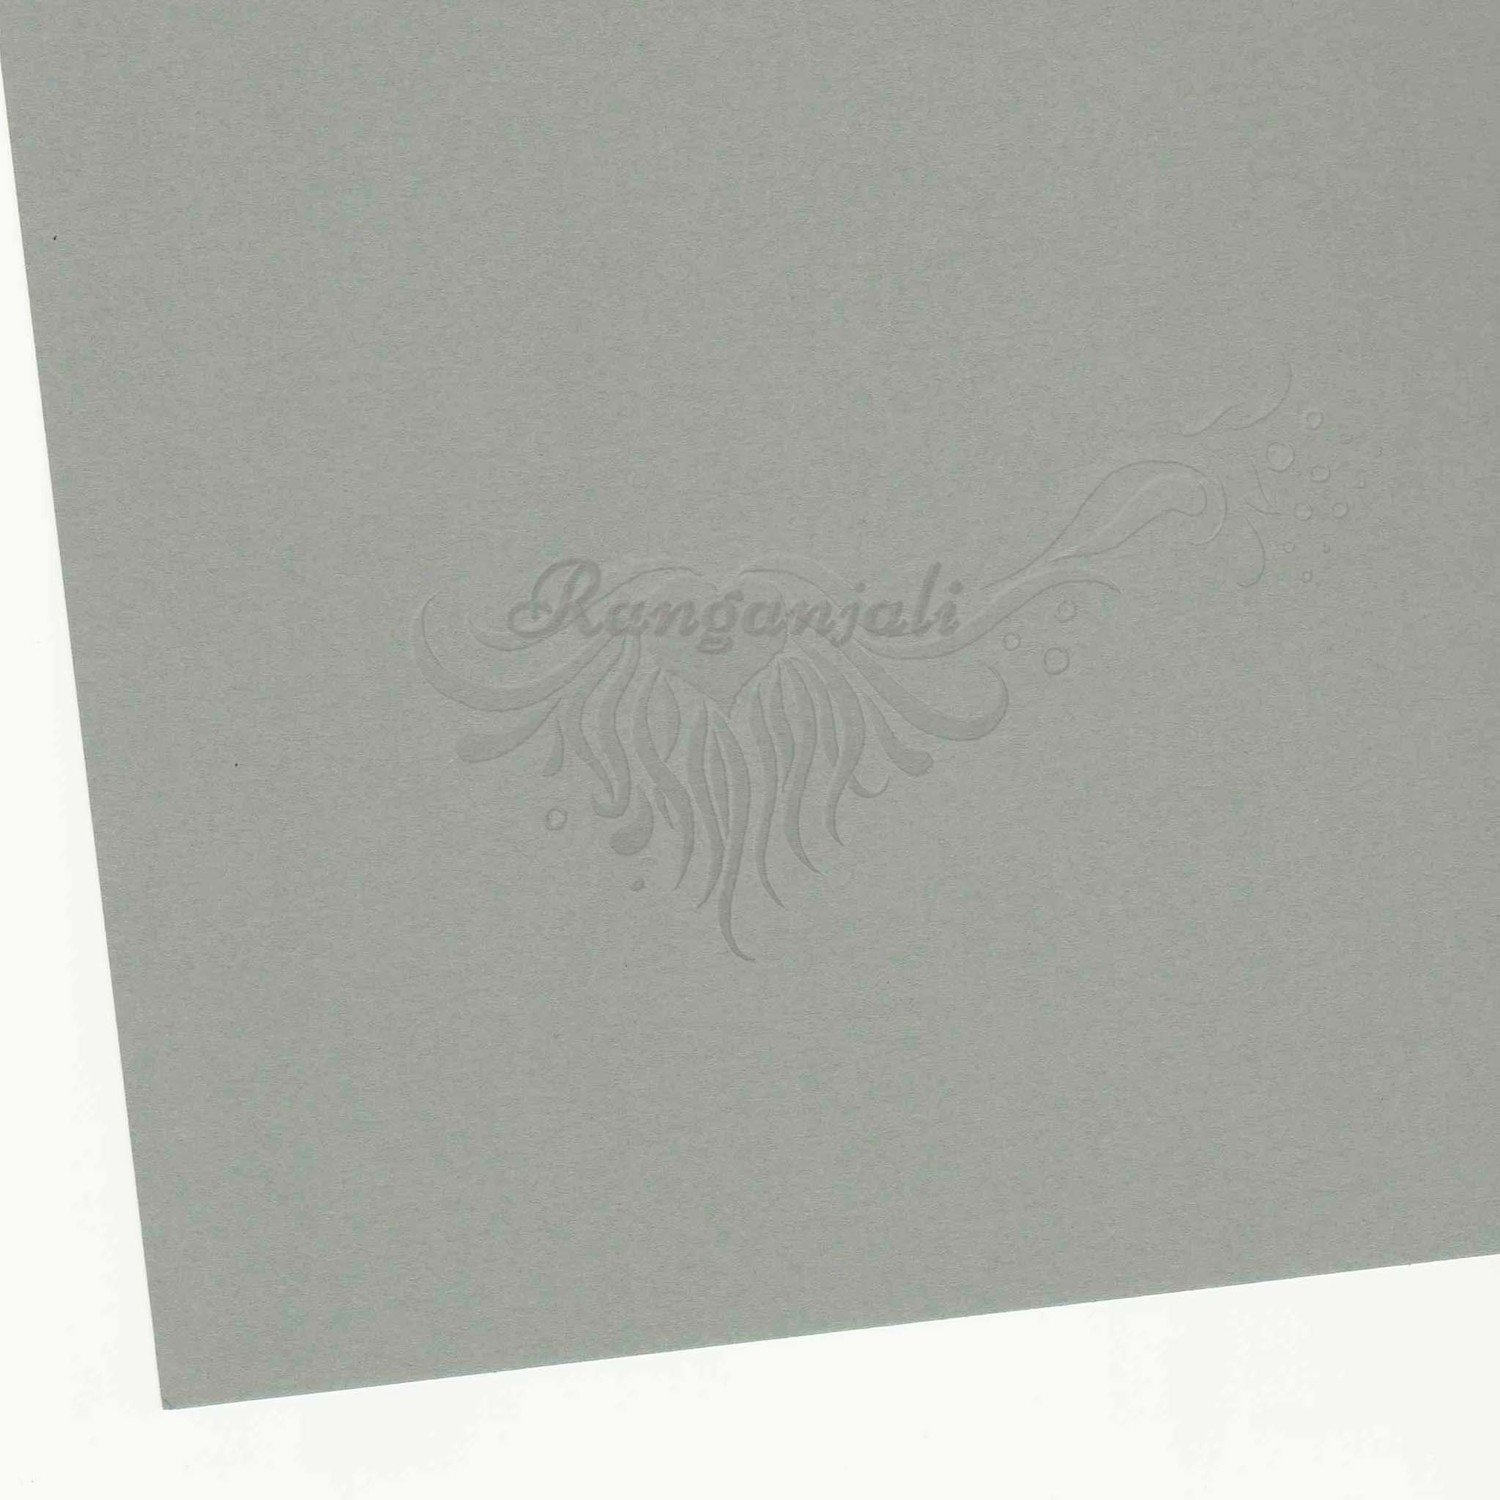 GAZA GREY - 250GSM Heavyweight Smooth A4 Cardstock- 5/pk